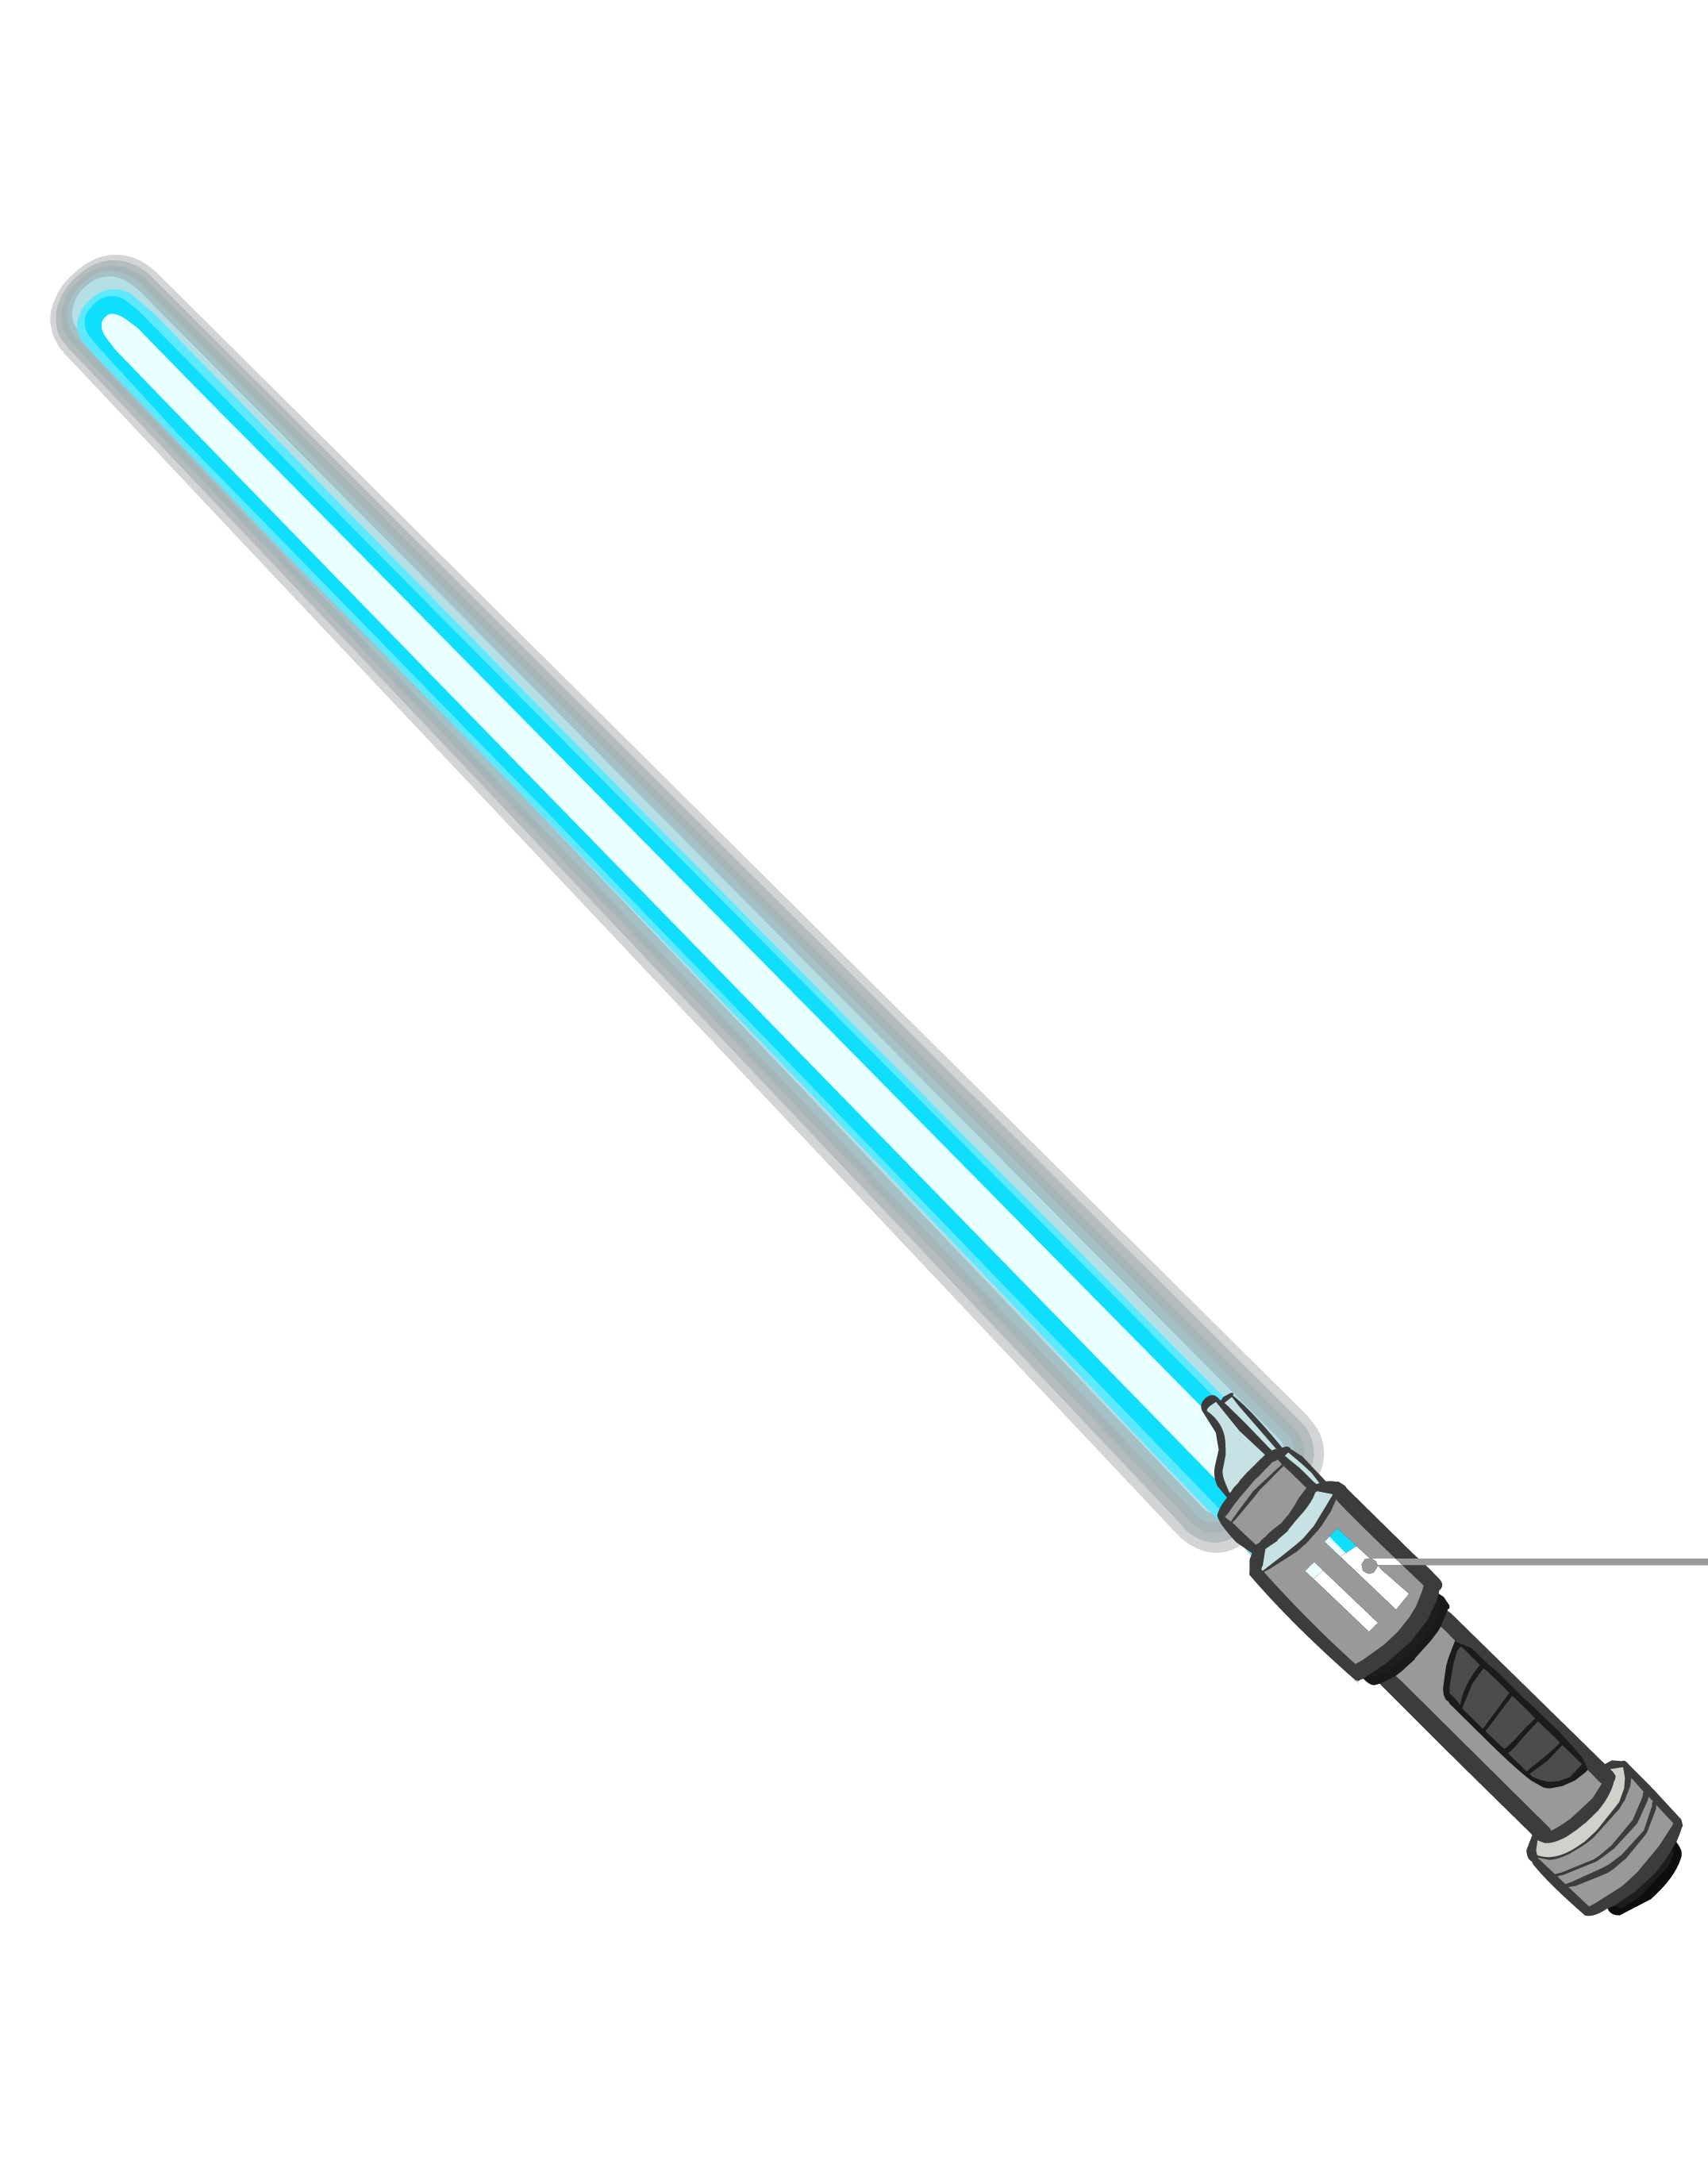 Lightsaber transparent png. Image blue icon club